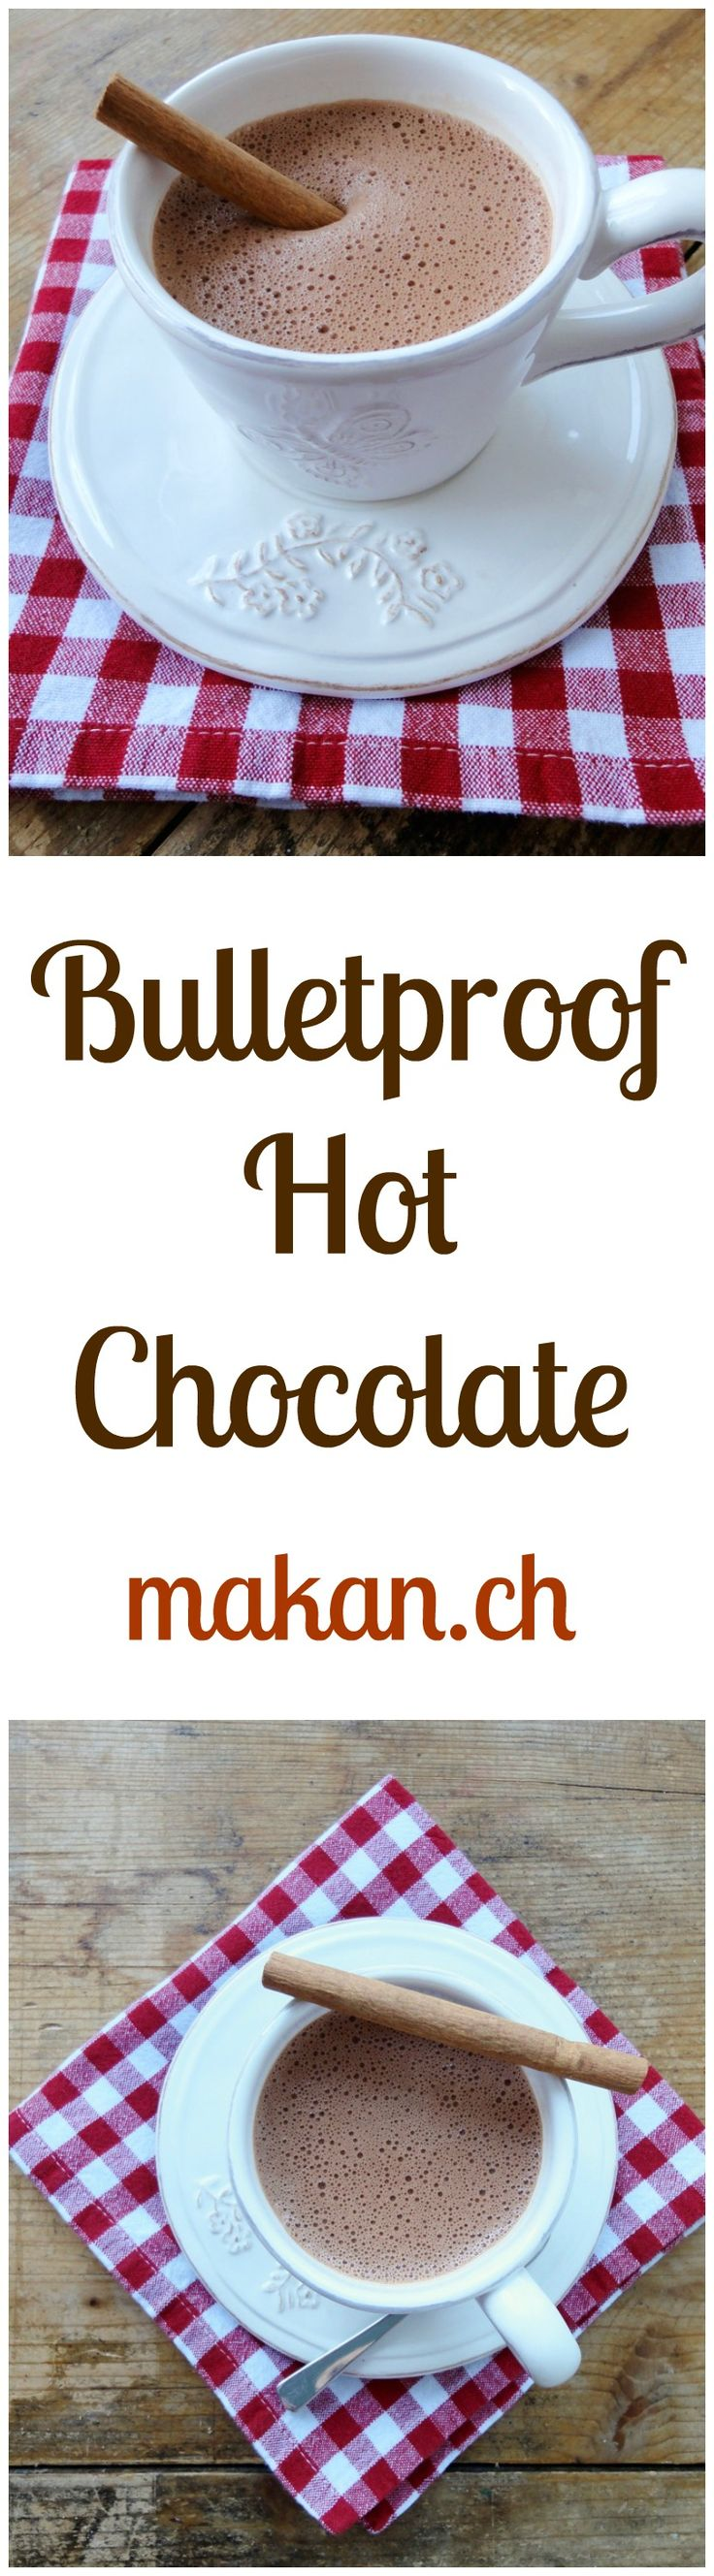 Bulletproof Hot Cocoa: Boil 1/2 cup water & 1/2 cup coconut milk. Off heat. Add 2 T unsalted butter, 1 T coconut or MCT oil, 2 T cocao, 1/4 t vanilla, dash cinnamon, sweetener. Blend till frothy. gm John 3:16